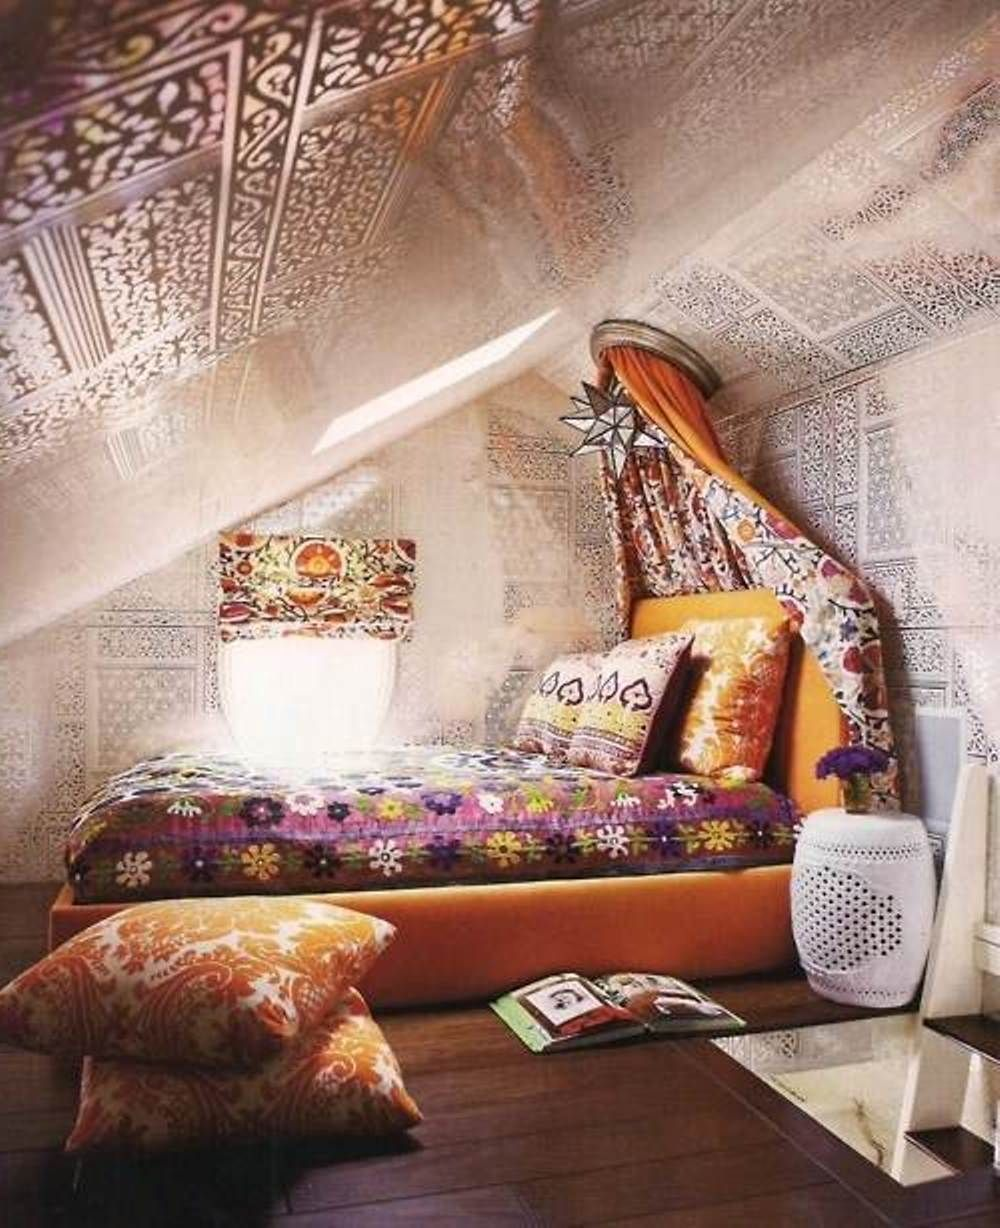 Attic Bedroom With A Hippie Vibe  Hippie Boho Chic Style  Pinterest  Attic bedrooms Attic